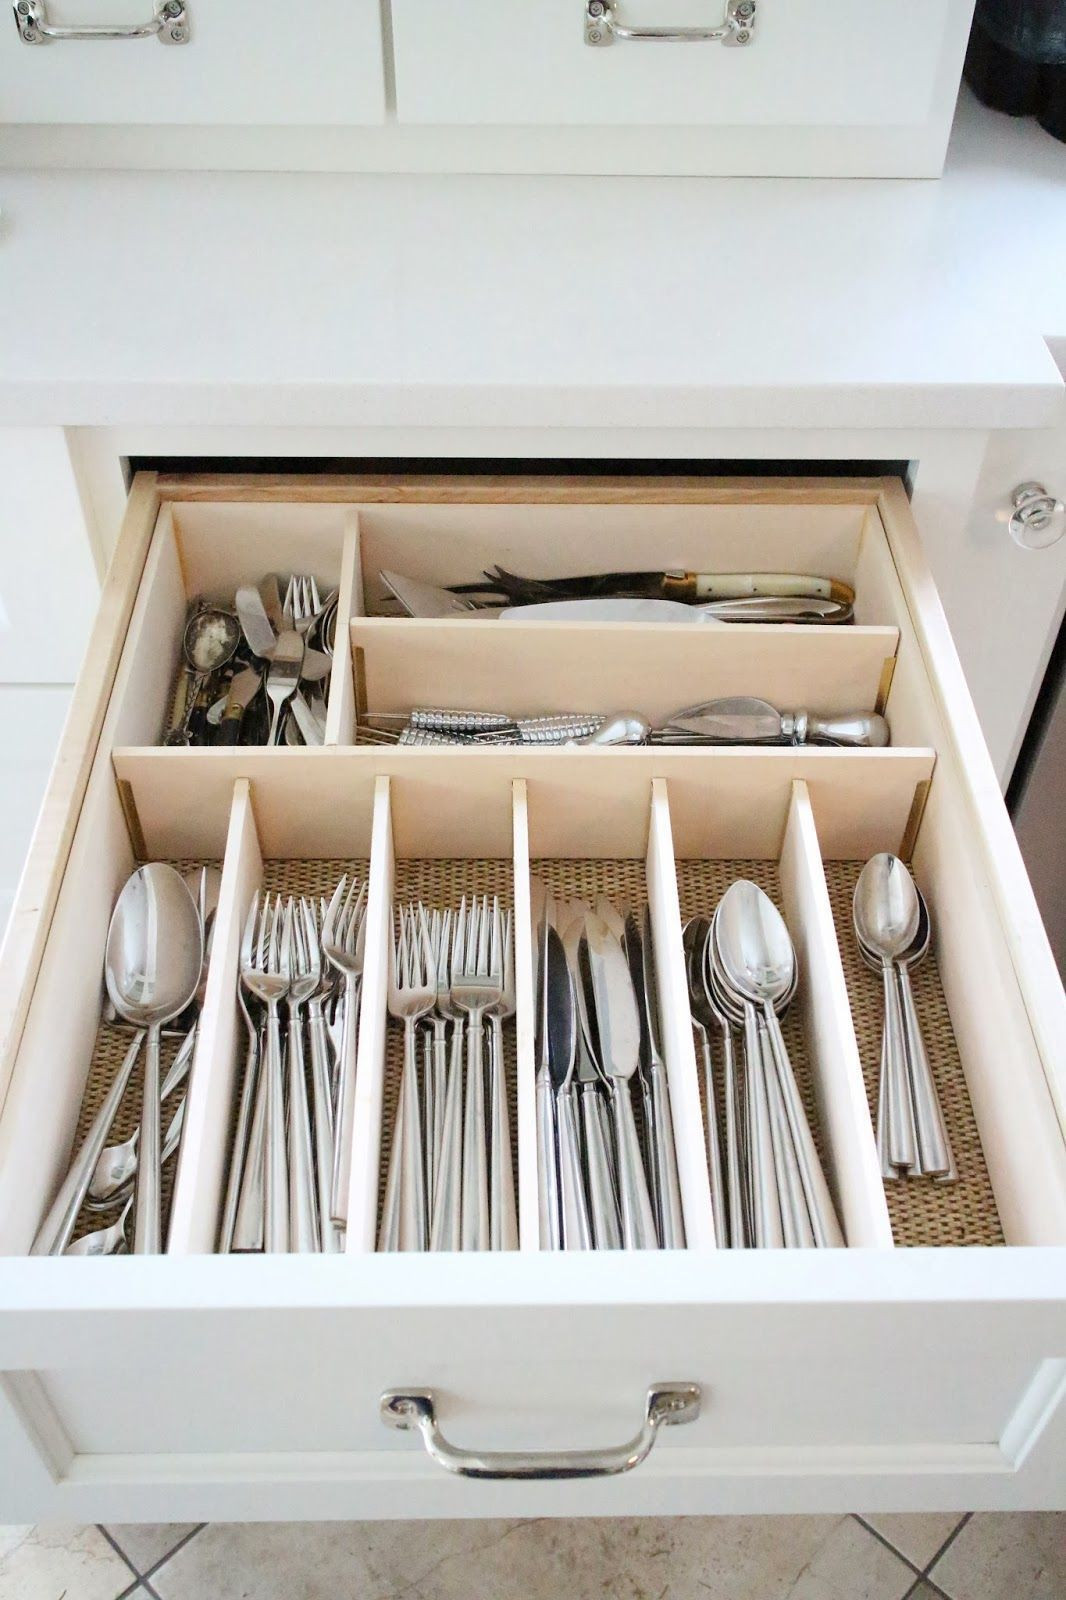 Best ideas about Utensil Drawer Organizer DIY . Save or Pin Drawer Organizing Tips That Keep The Mess At Bay Now.